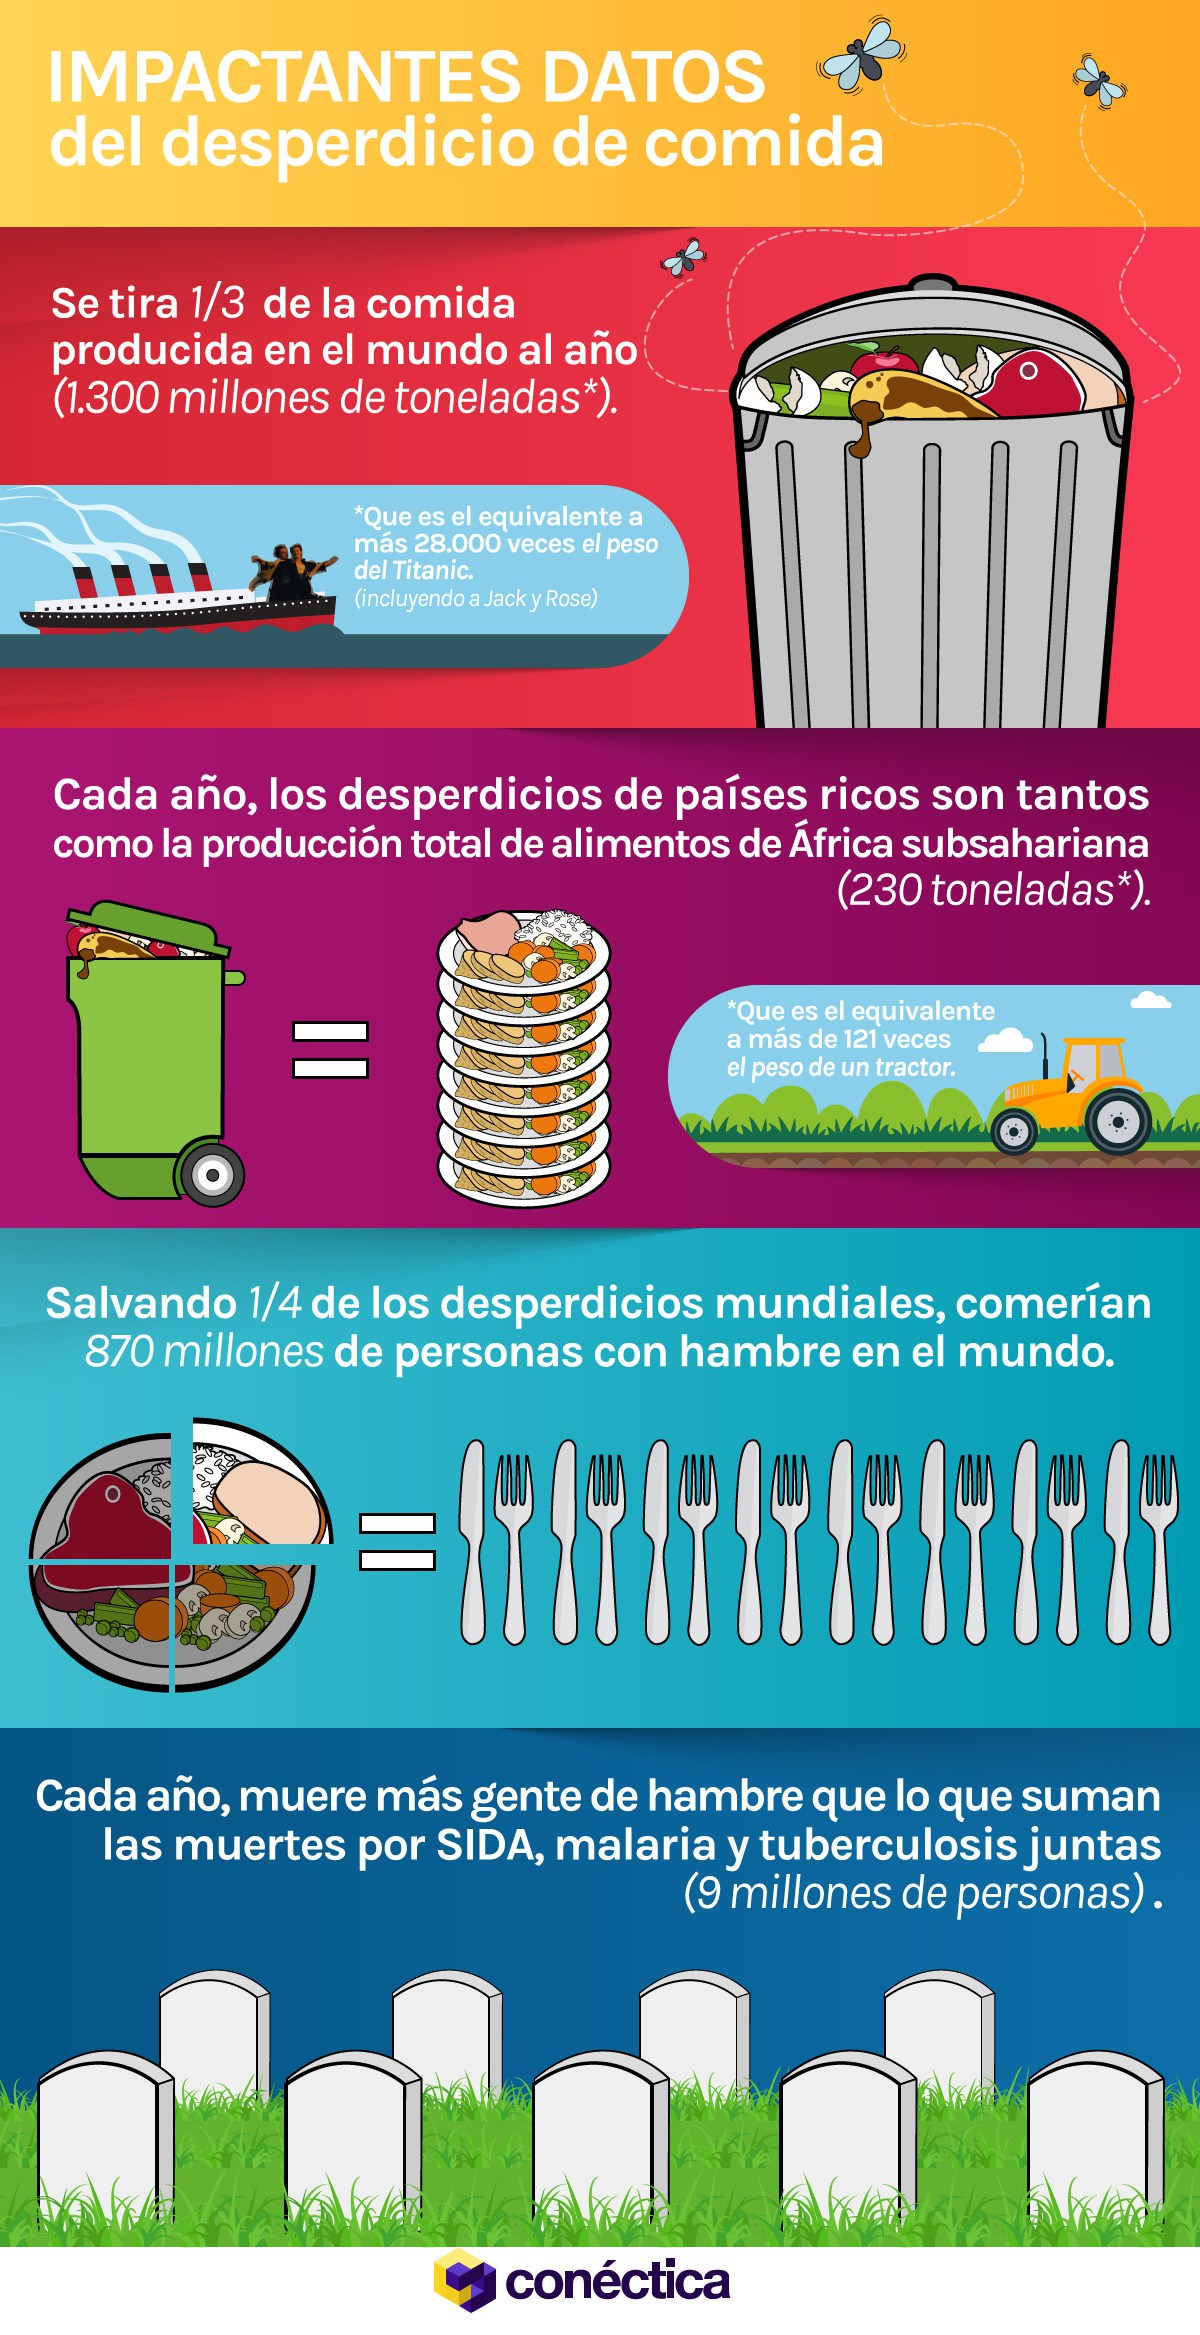 Infografia_ImpactantesDatos.jpg